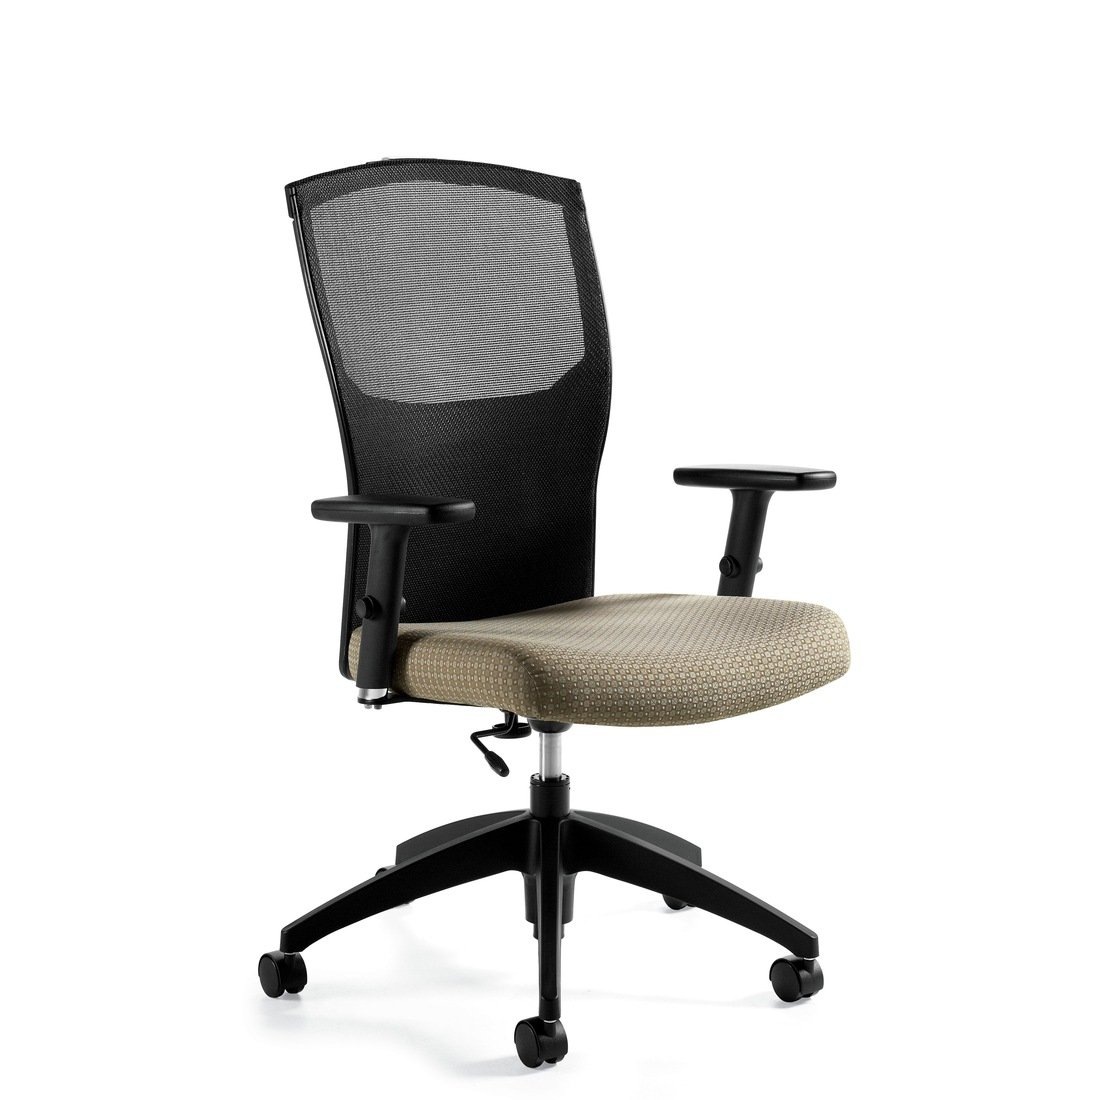 Alero mesh high back task chair, model 1961-6. This chair has been placed on a white background.